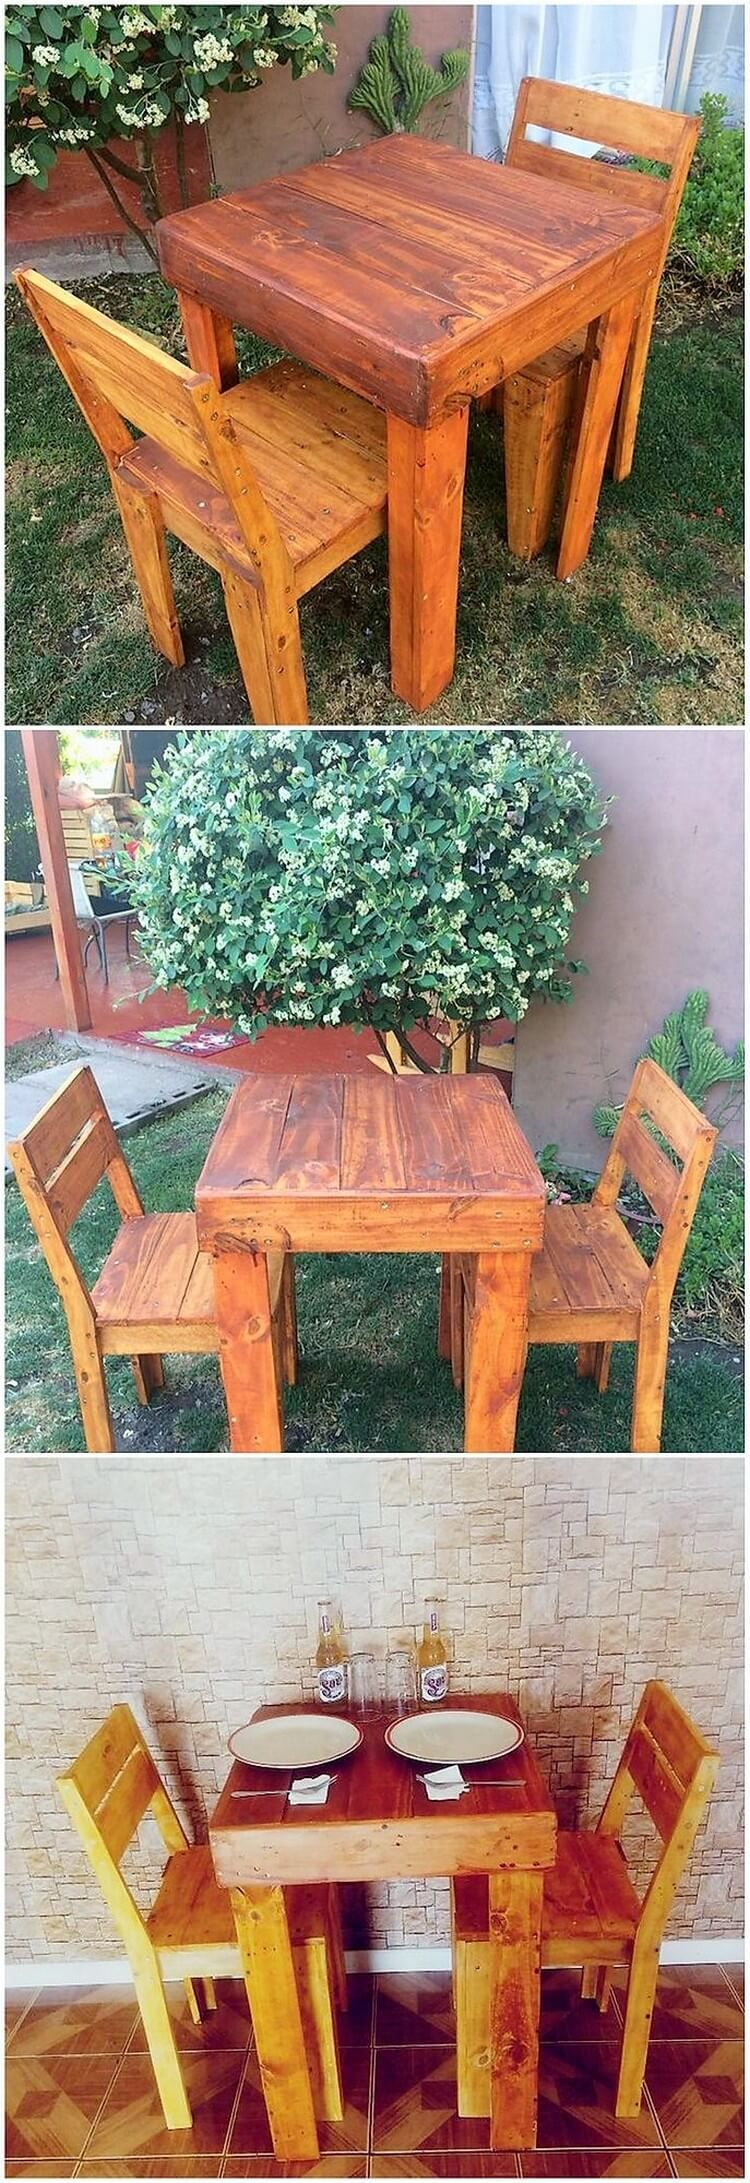 Your house outdoor will look so imperfect and incomplete if it is not equipped with the best perfection of the wood pallet furniture set into it. This amazing furniture set is enclosed with the settlement of the chairs pairing that is durable and rough sturdy use of the pallet all into it.